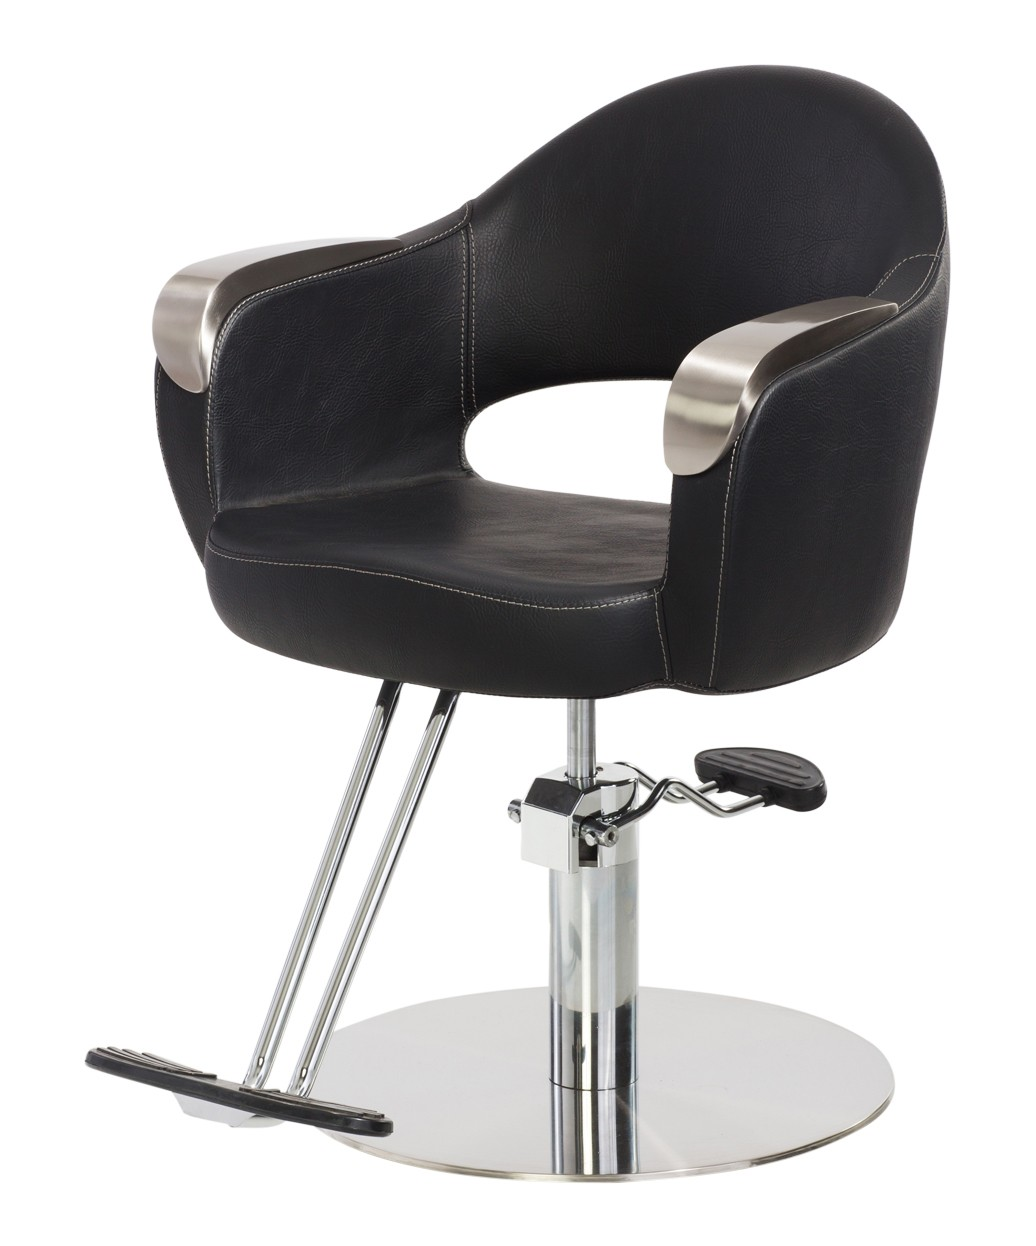 Hair Salon Chairs Styling Chairs from BuyRite Beauty